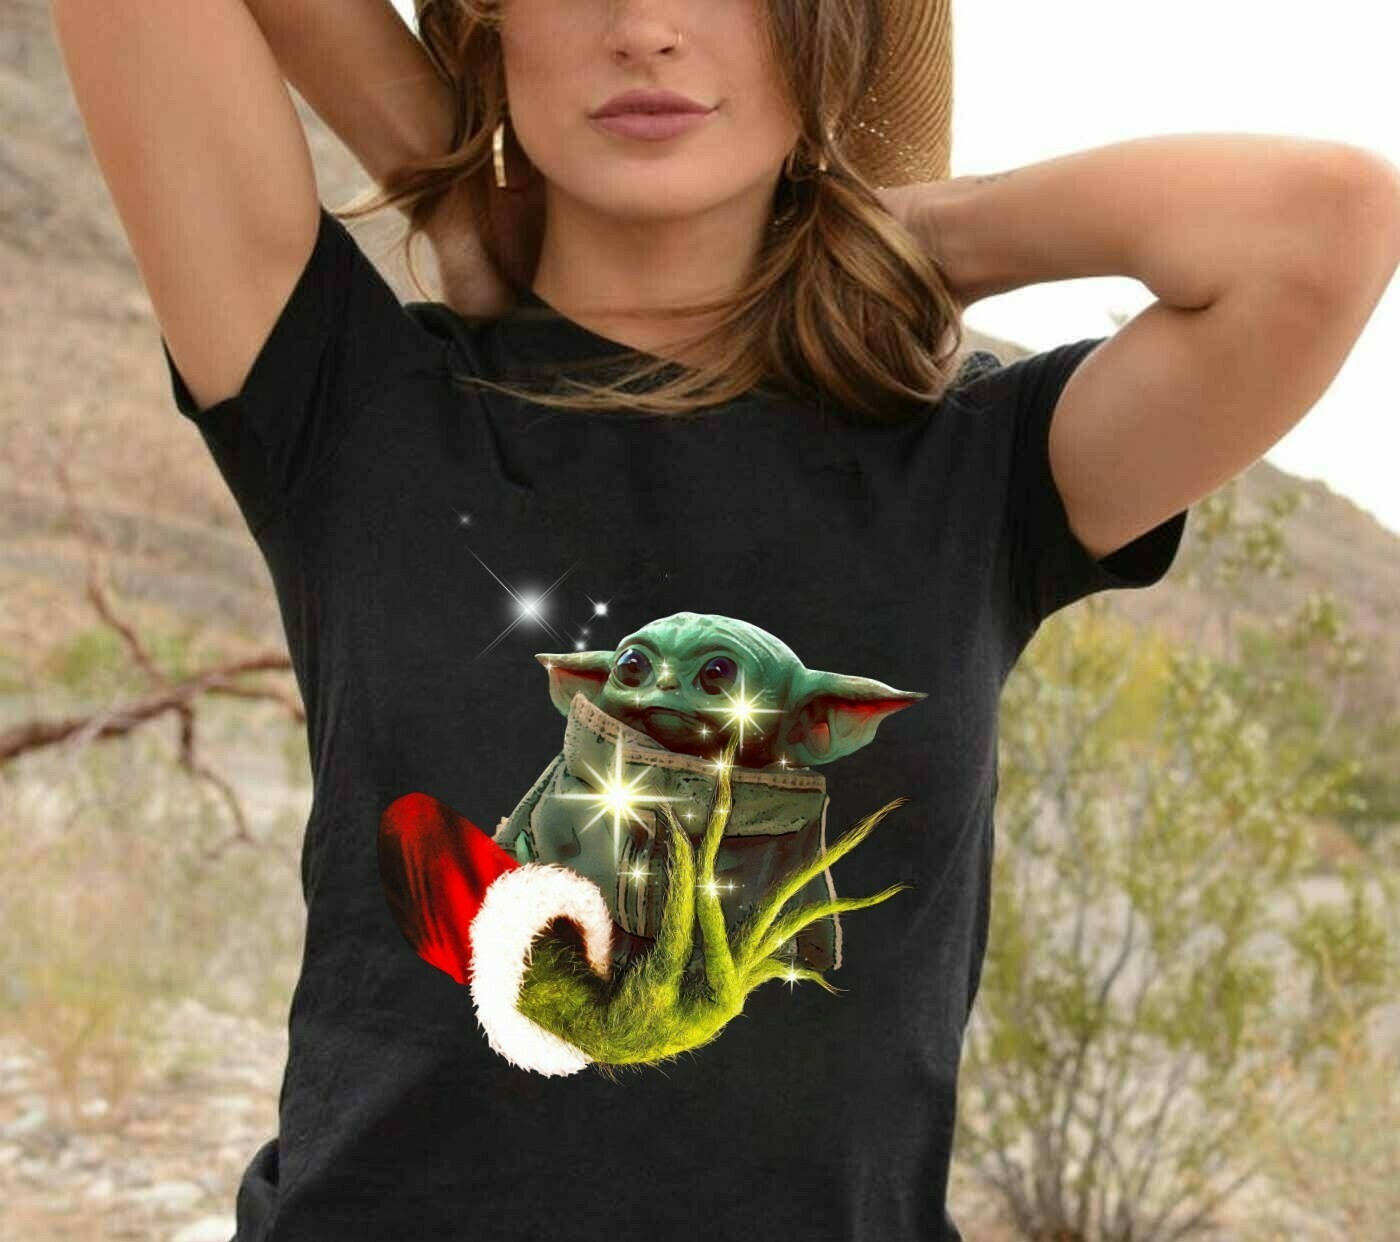 Grinch Hand Holding Baby Yoda Christmas Apparel Mandalorian Baby Yoda Star Wars Grinch magic of Christmas Merry Grinchmas T-Shirt Long Sleeve Sweatshirt Hoodie Jolly Family Gifts